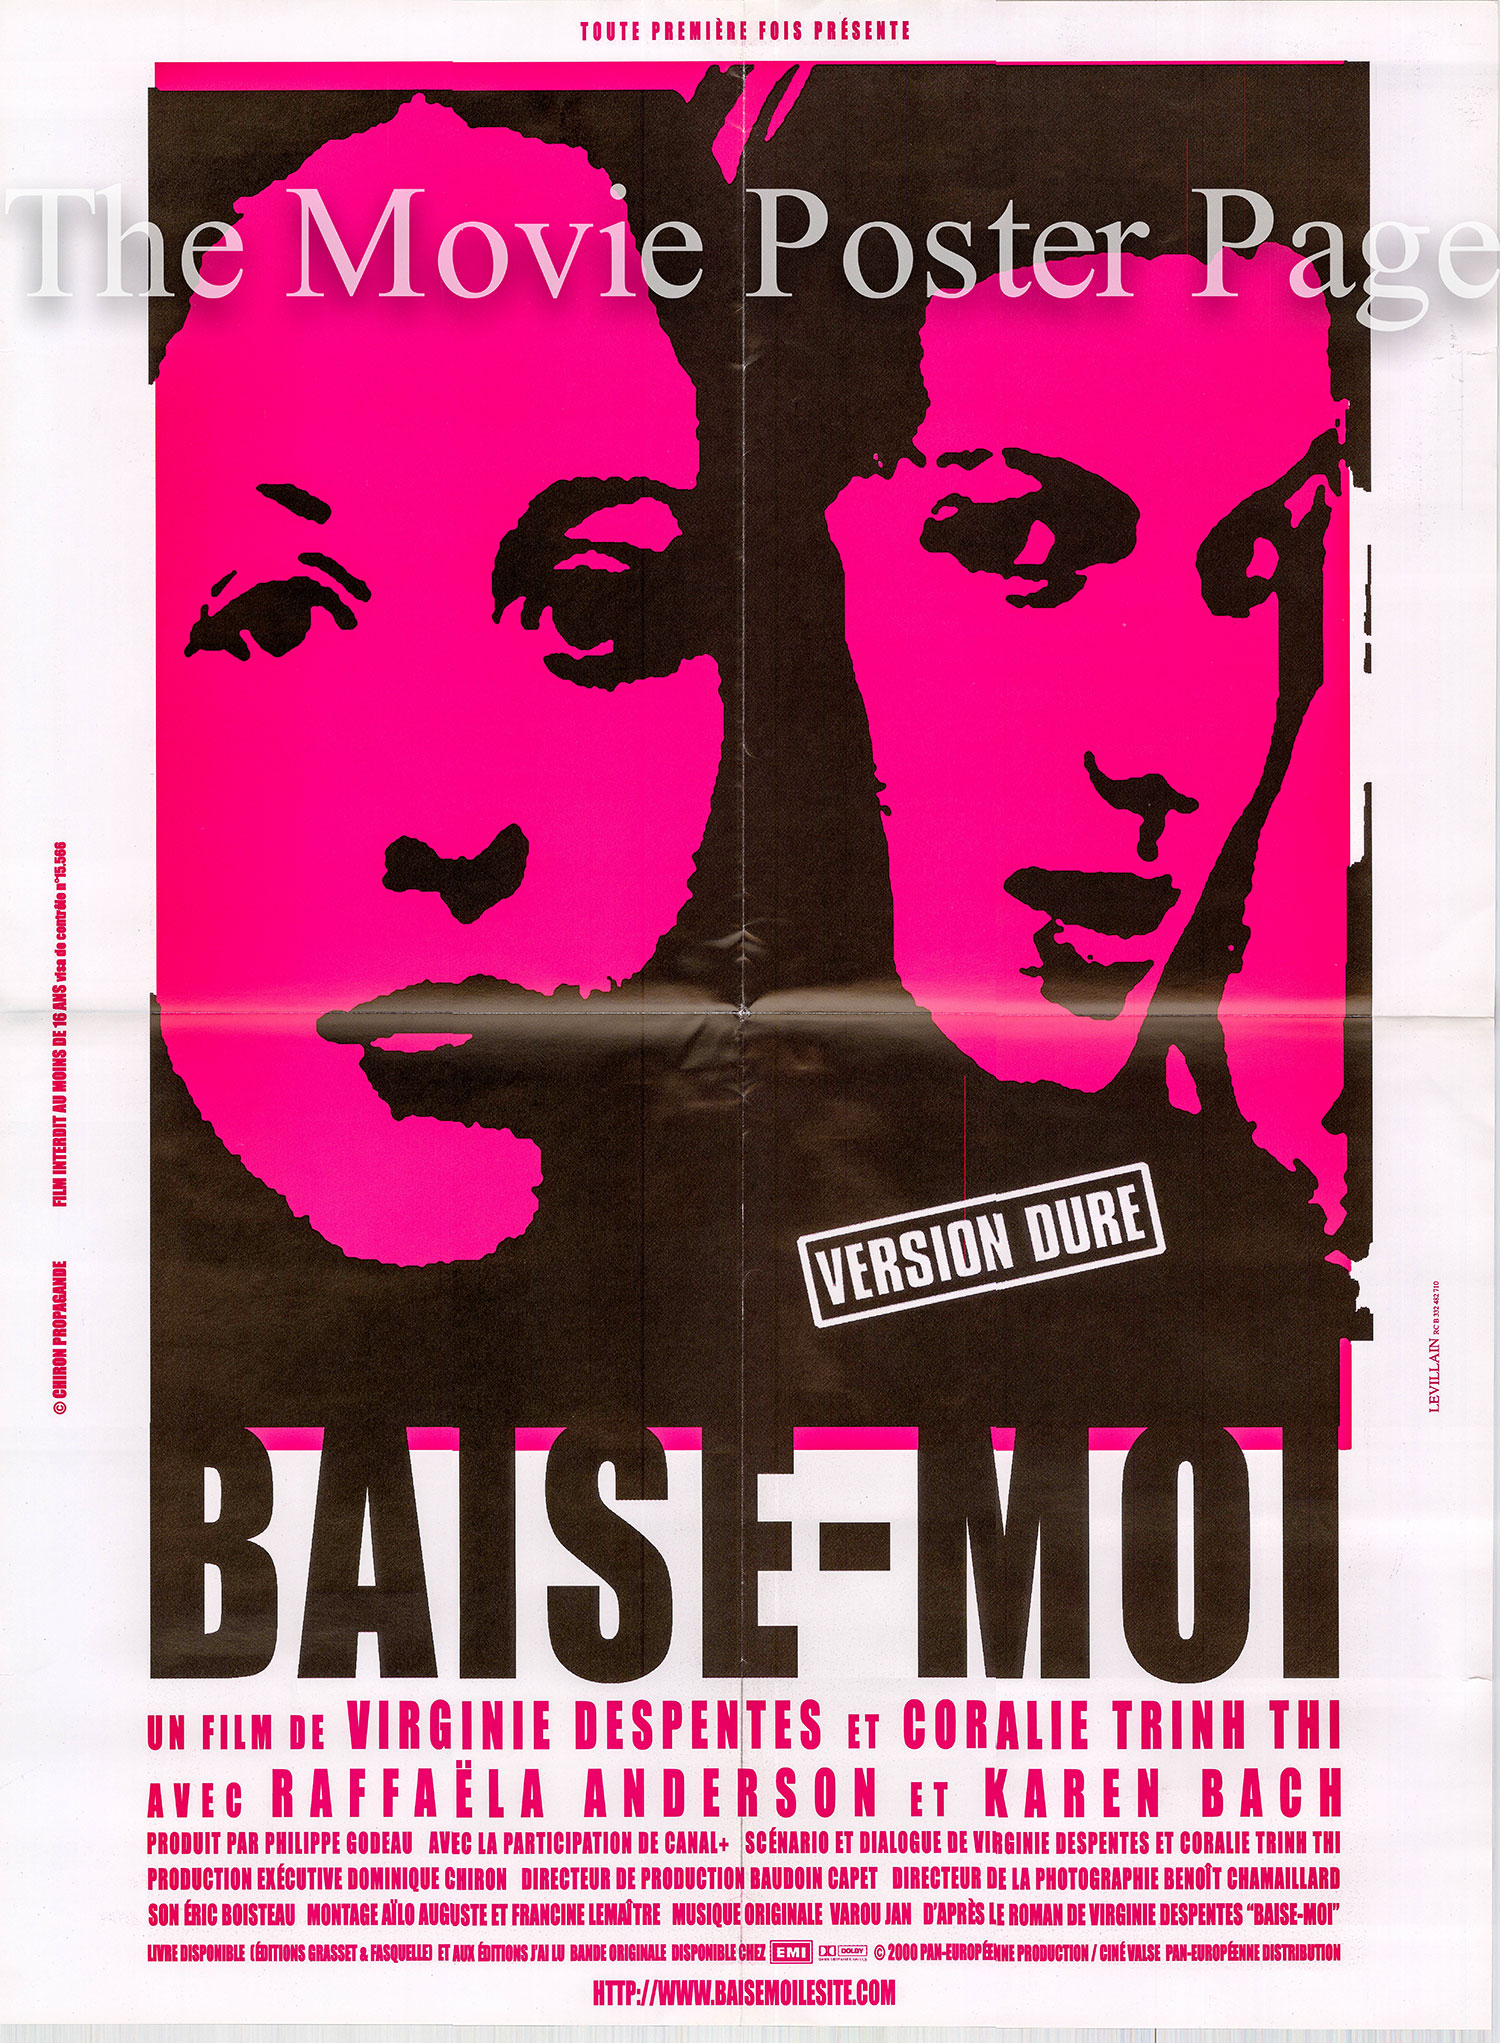 Pictured is a French promotional poster for the 2000 Virginia Despentes and Coralie Trinh Thi film Baise-Moi starring Karen Lancaume.